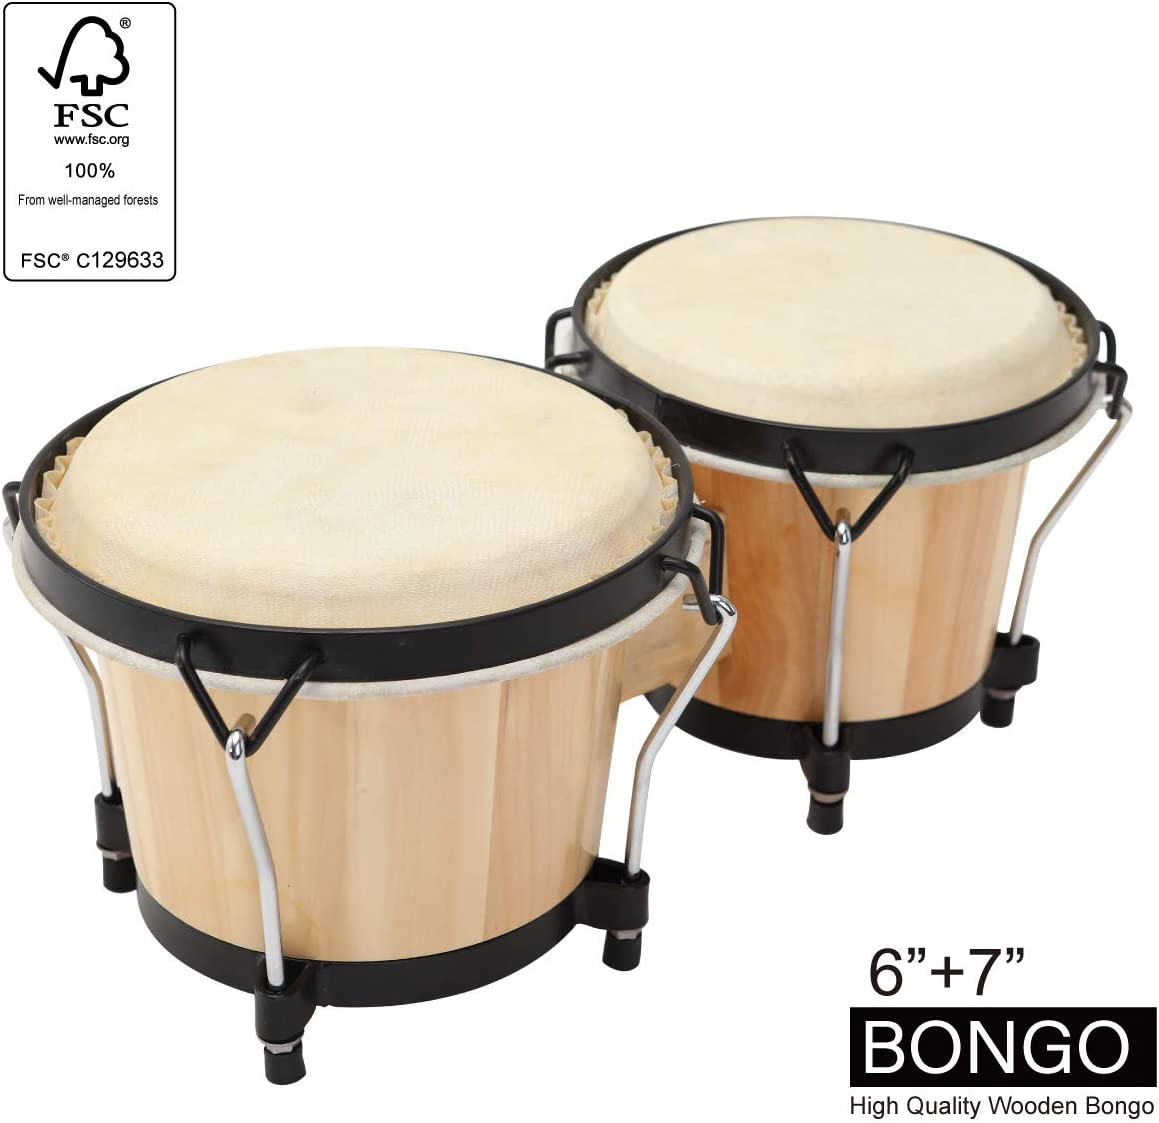 MUSICUBE Bongo Drum Set for Kids Adults Beginners Professionals with Tuning Wrench